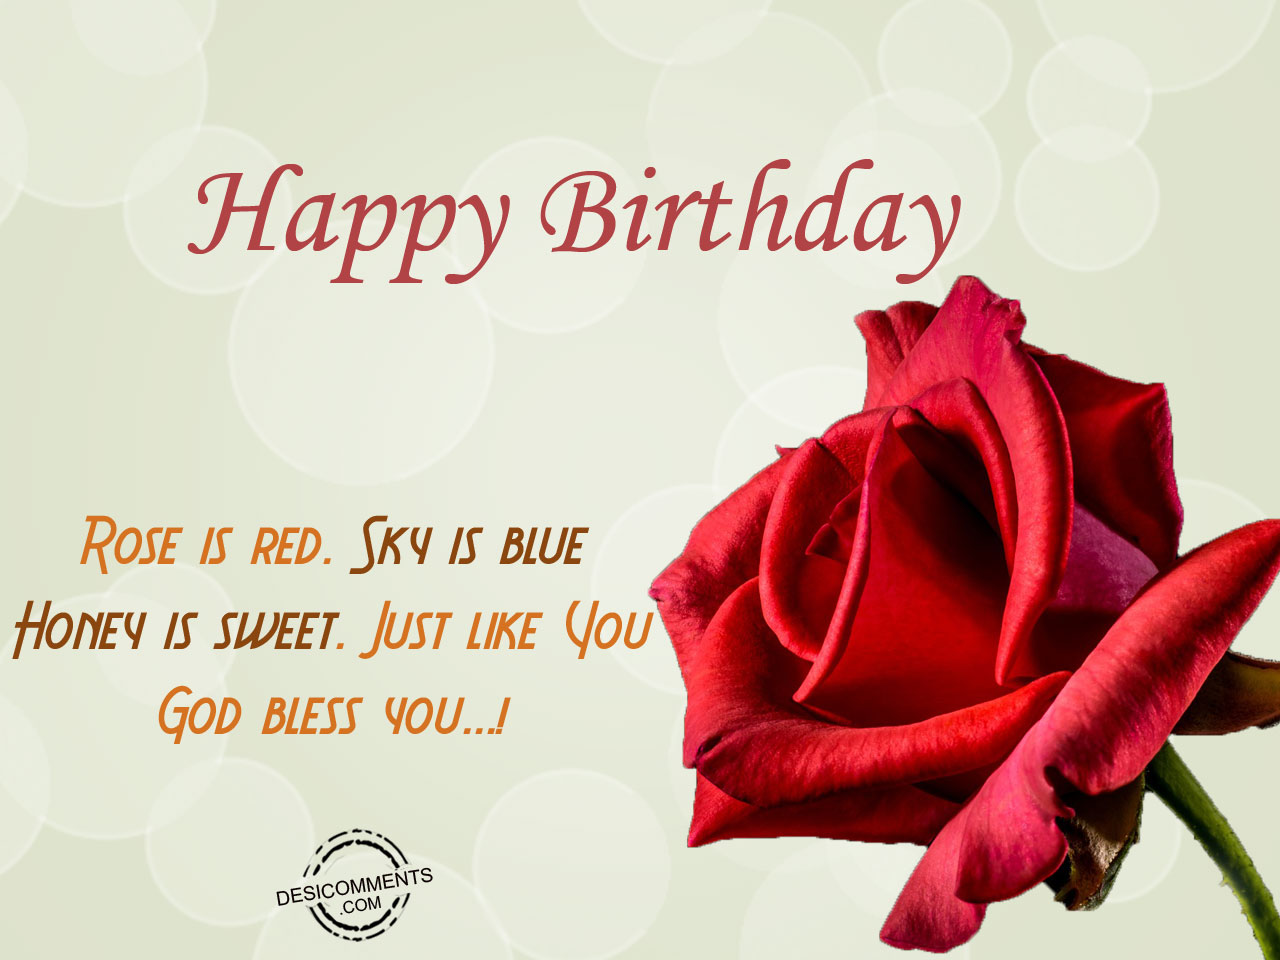 birthday wishes for husband greeting cards ; 2af83d1129d92be2116943517bfd4051